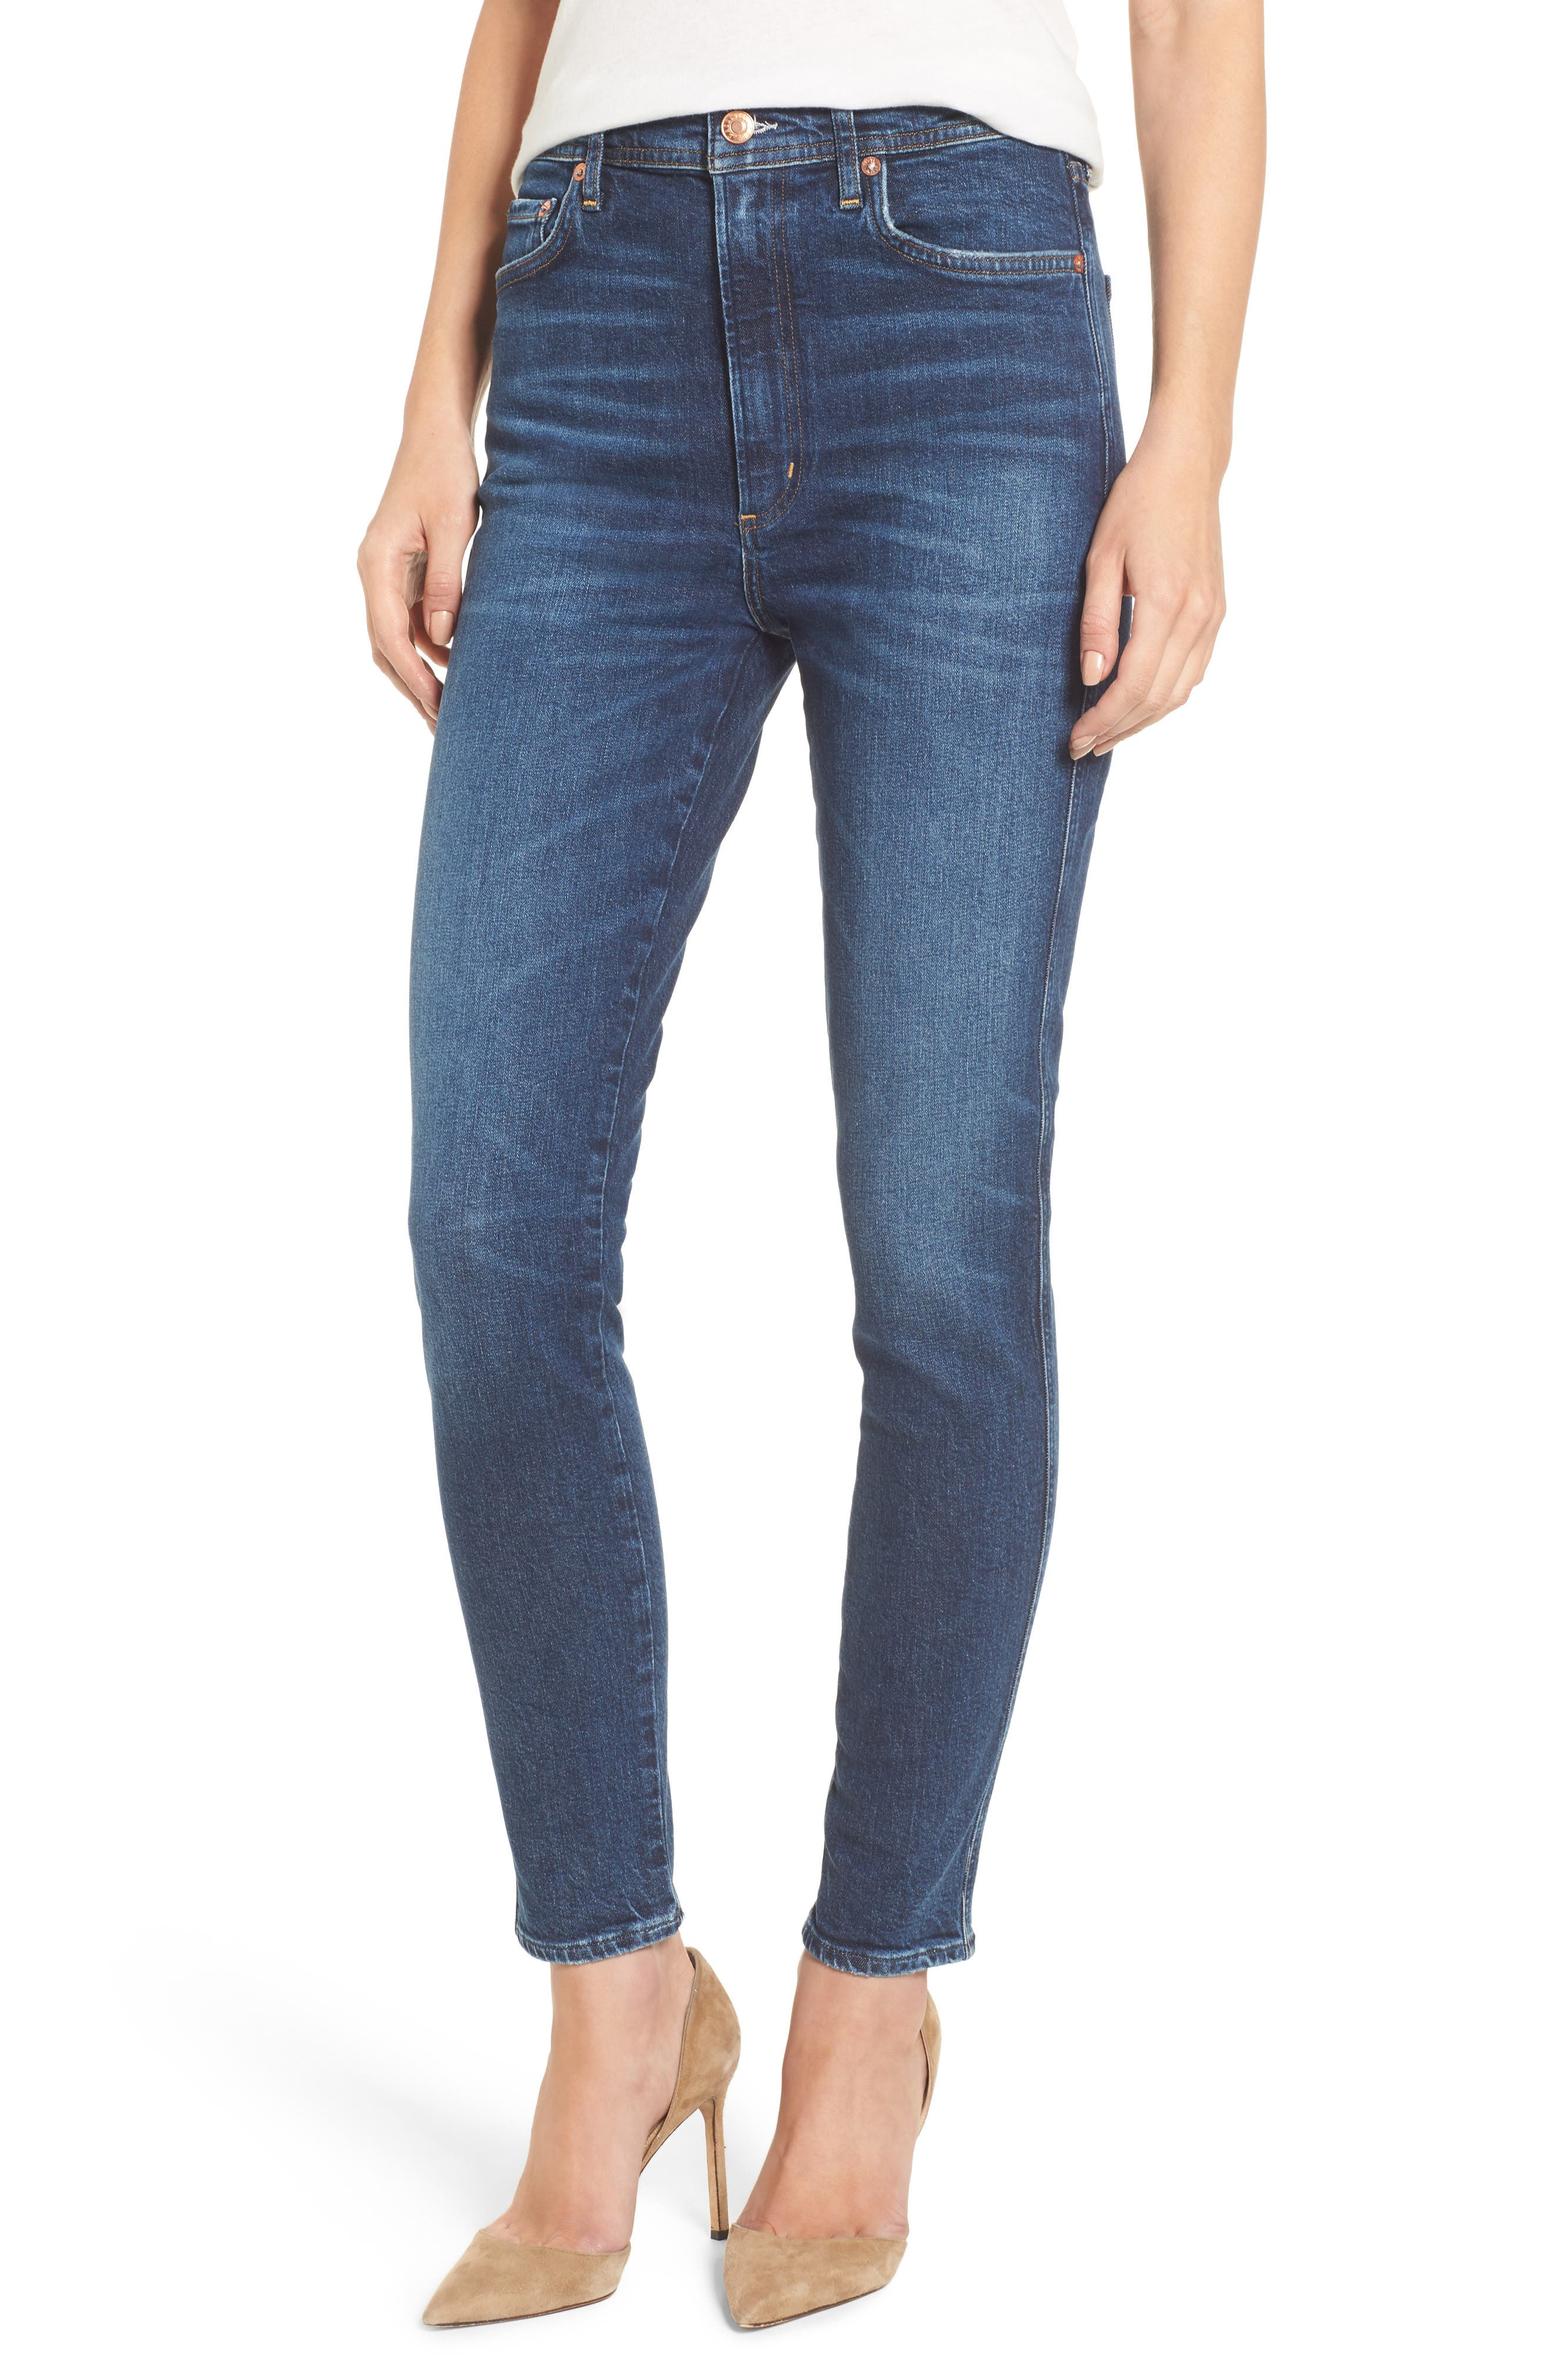 Alternate Image 1 Selected - AGOLDE Roxanne Super High Rise Skinny Jeans (Freeway)